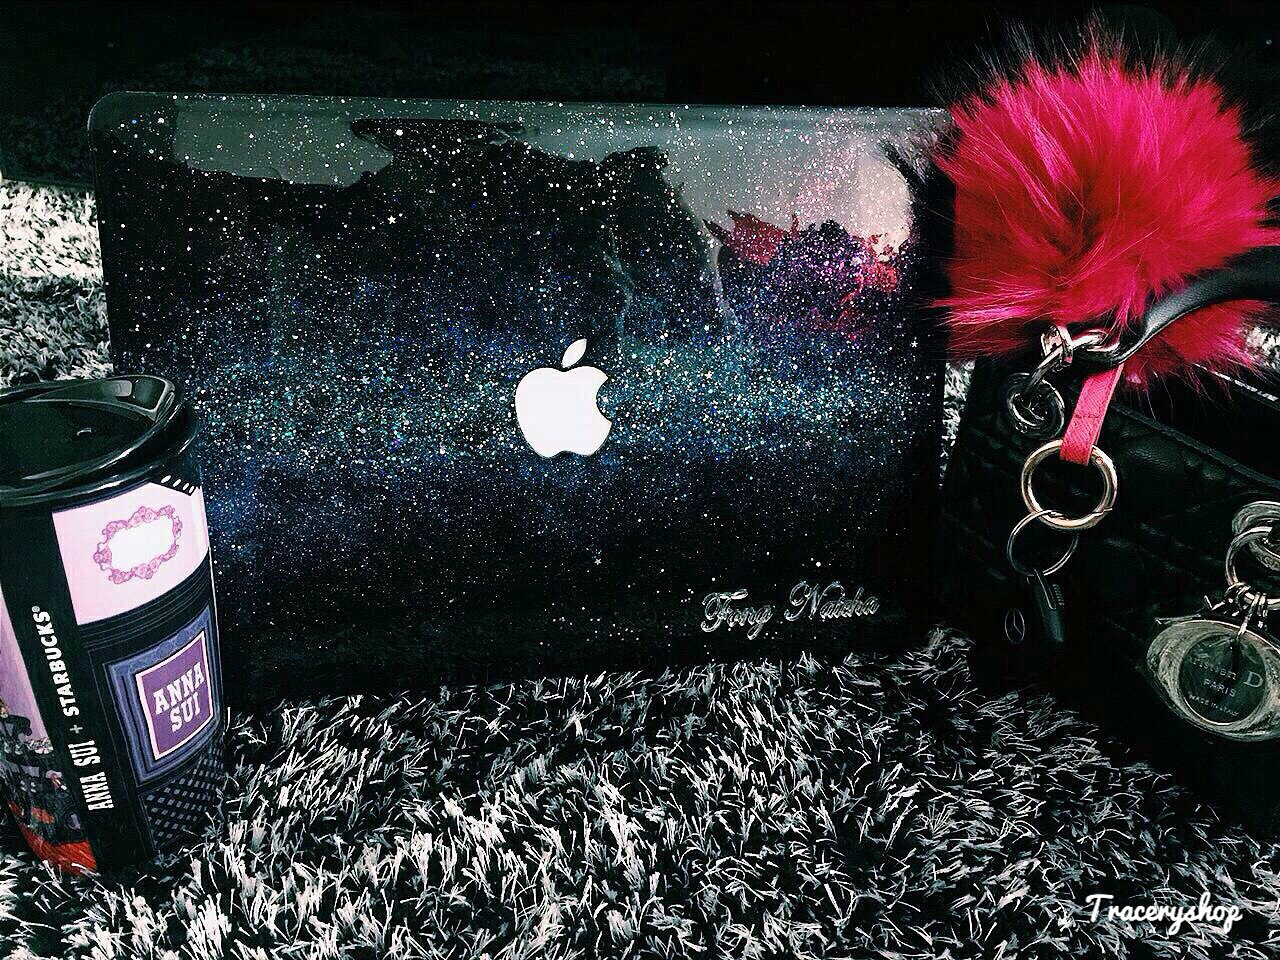 Macbook,Macbookcase,MacBookPro,Macbookair,Macbookretina,glitter,Glittercase,เคสกลิตเตอร์,เคสกากเพชร,เคสแม็คบุ๊ค,Macbookglittercase,Hologram,traceryshop,Pink,Galaxy